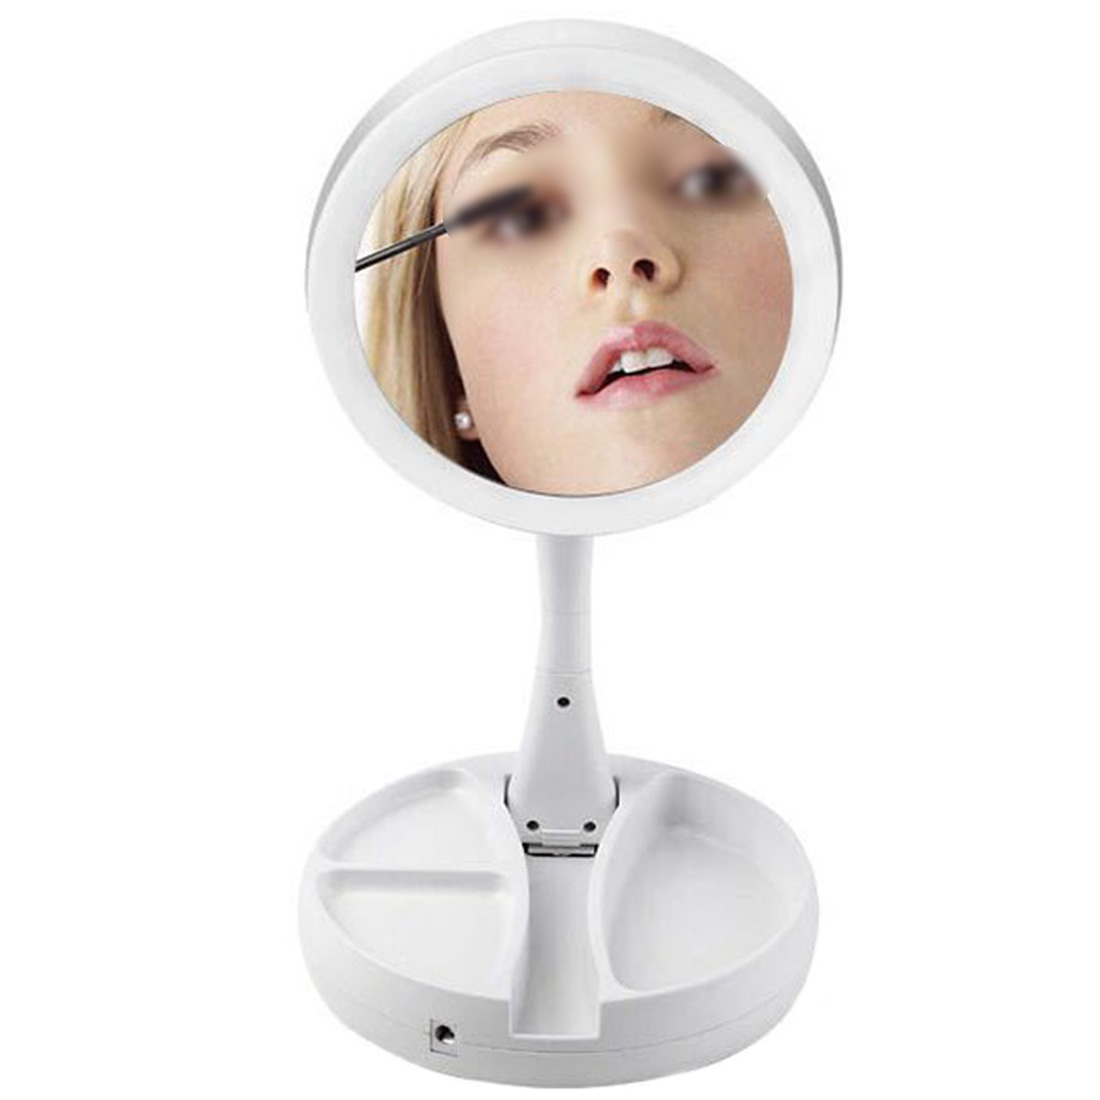 16Leds with Light -touch Screen Makeup Mirror/ White/10X Magnifying /Foldable Portable LED Lighted Makeup vanity compact Mirror 22 led touch screen makeup mirror 10x magnifier bright lighted cosmetic makeup mirror portable vanity countertop 180 rotating